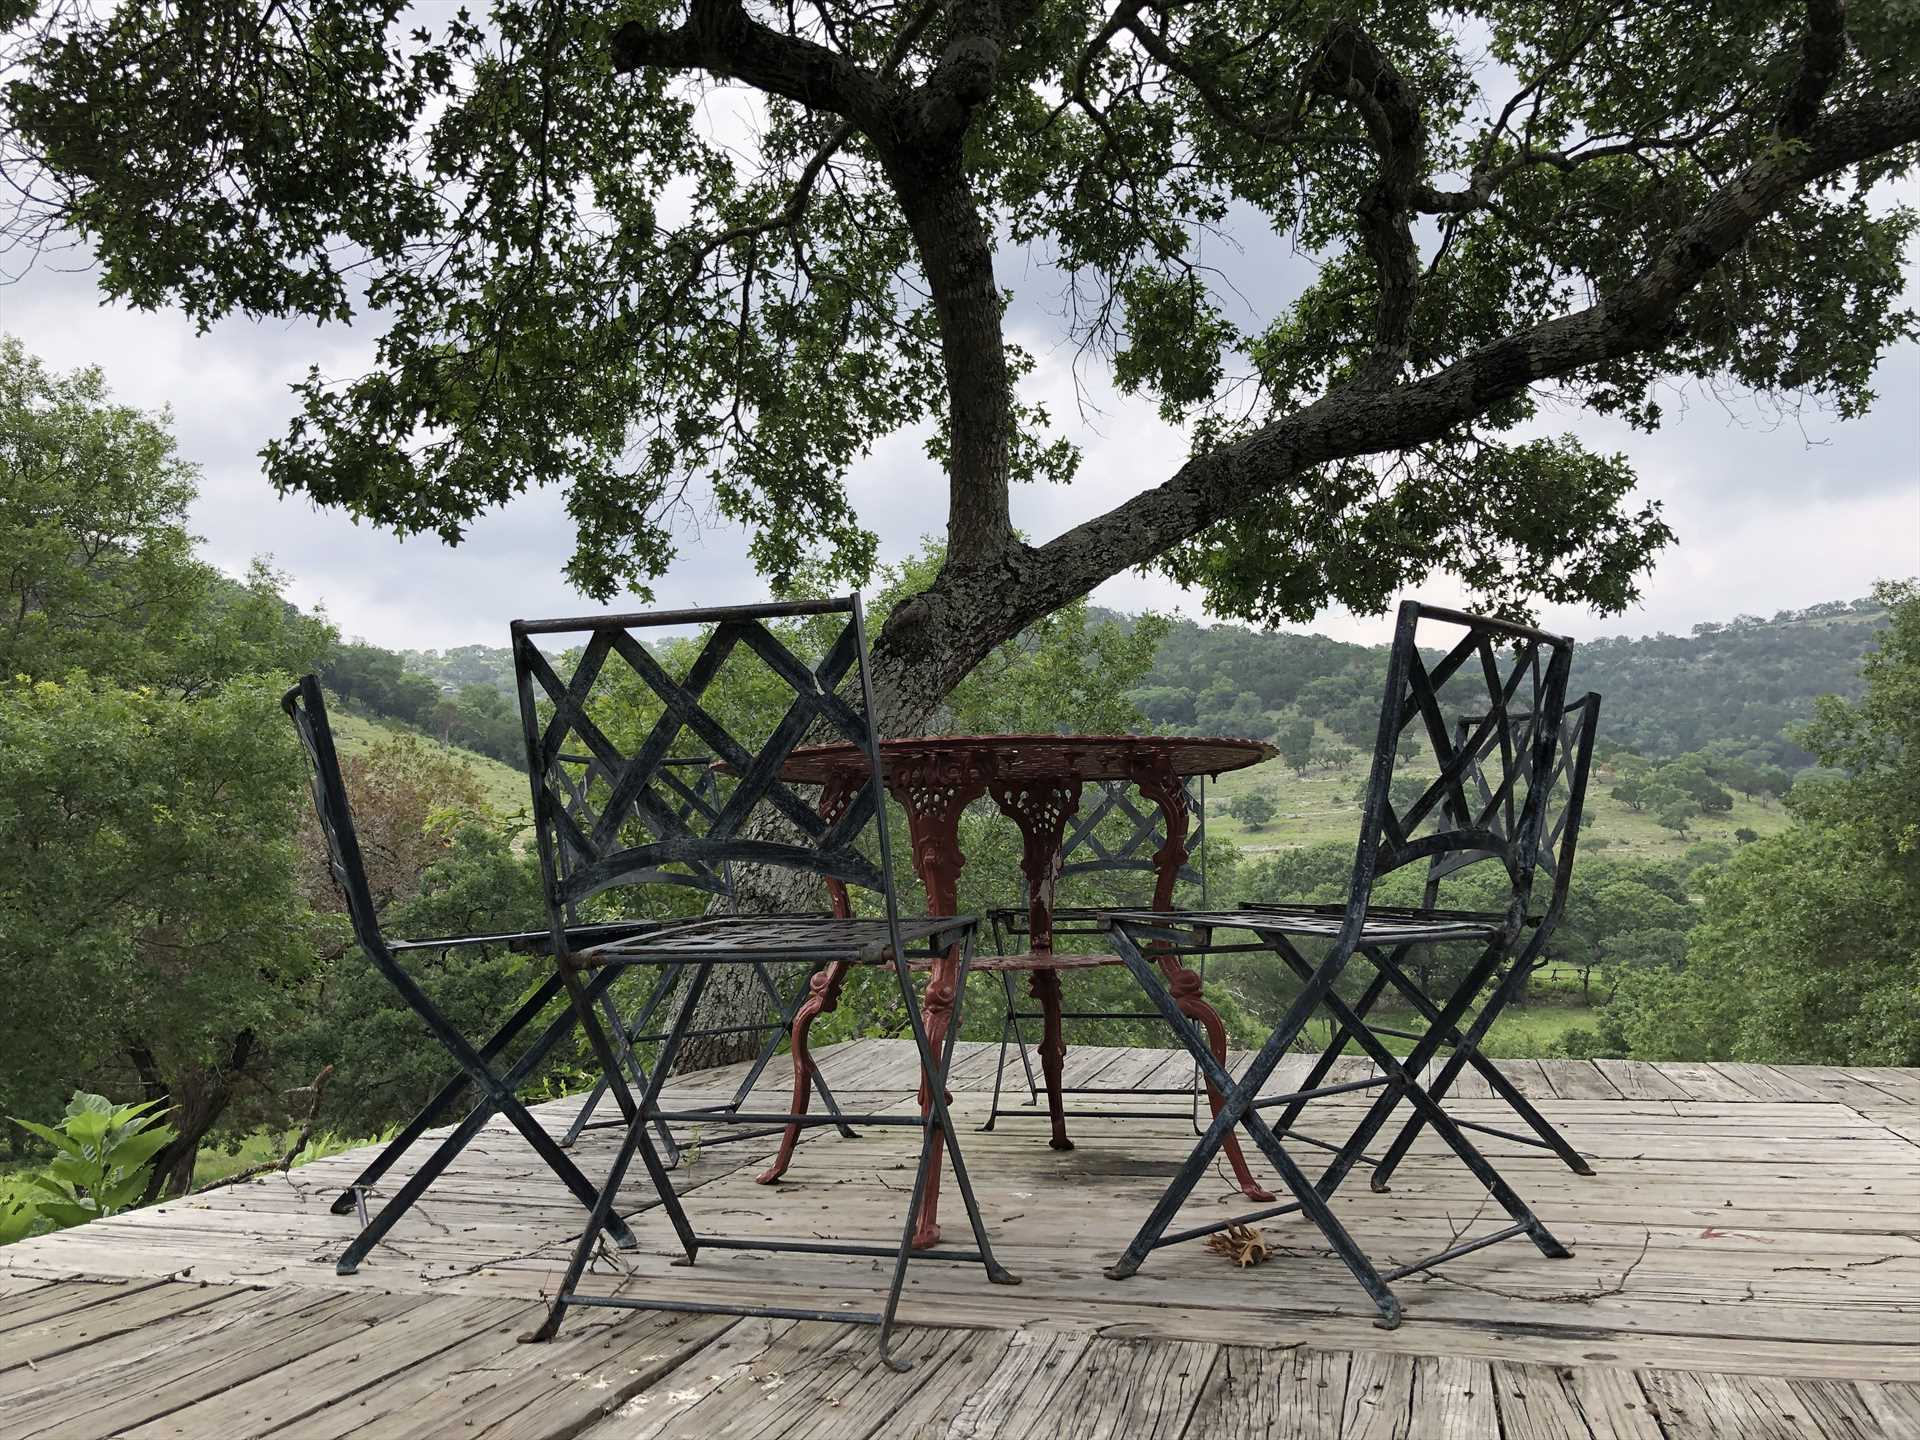 Recipe for great memories: take one Hill Country view, add four close friends or family members, stir in some fresh mountain air, mix well.